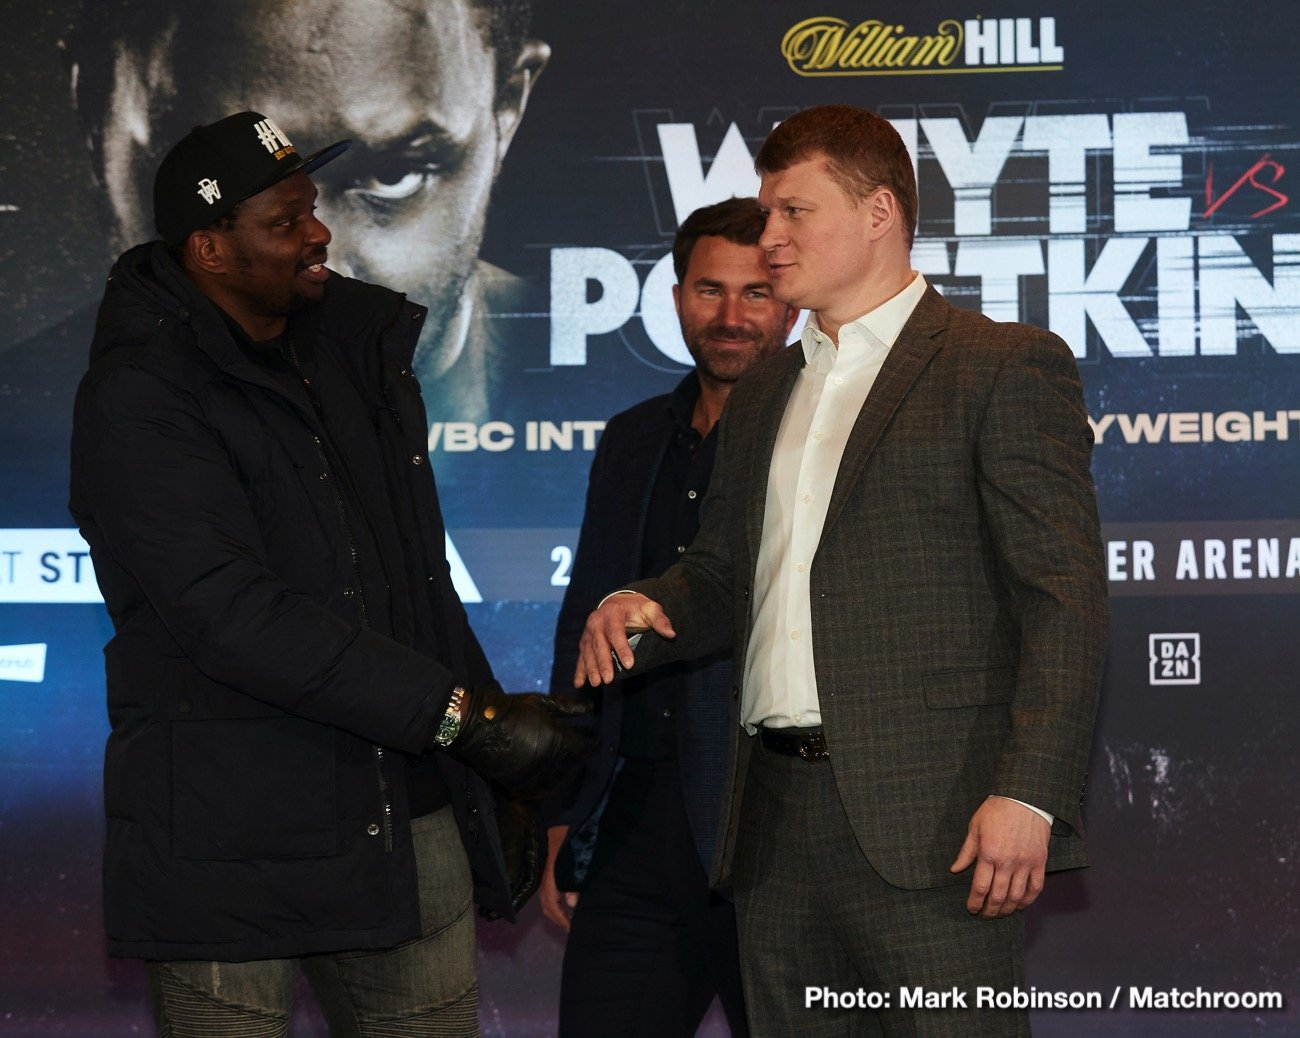 Alexander Povetkin, Dillian Whyte - Is the third time a charm? The fight between heavyweight contenders Dillian Whyte and Alexander Povetkin, twice postponed due to the coronavirus, has a new date, it's third. According to Mike Coppinger, the fight between the Brit and the Russian is now set to go down on August 22, the battle to be the finale of Eddie Hearn/Matchroom's Fight Camp series. The fight will go out on DAZN in the U.S.